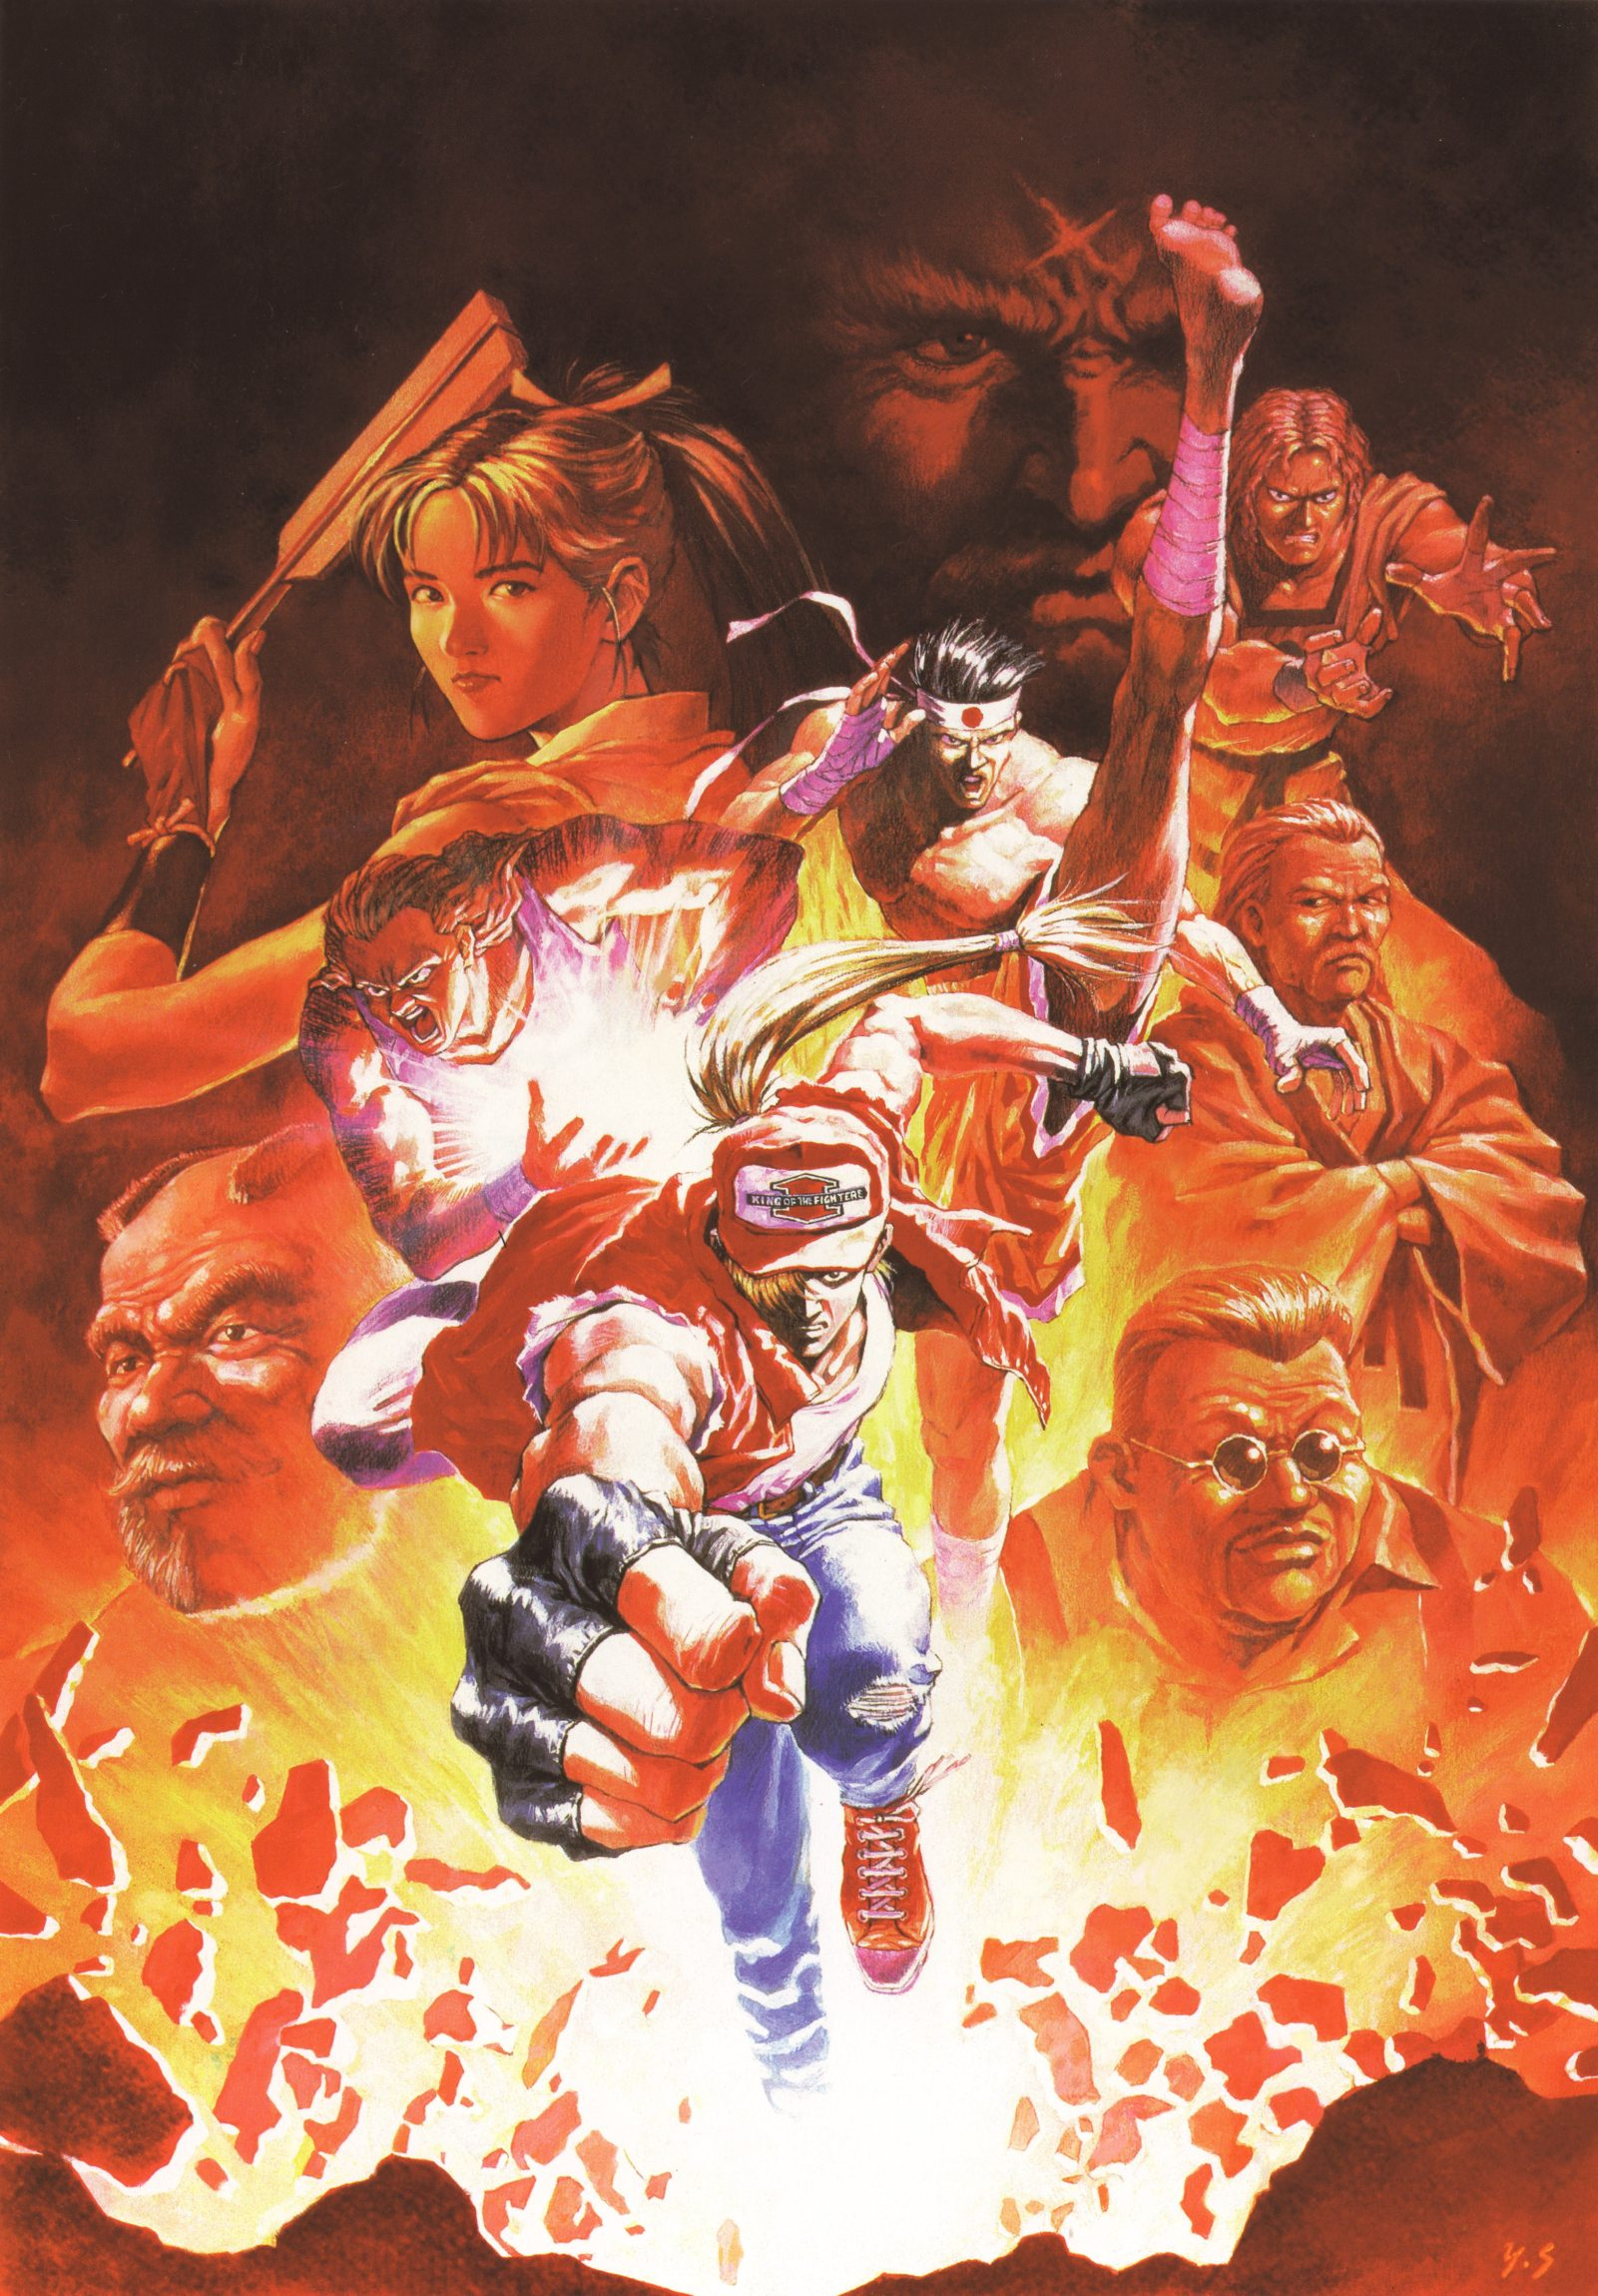 shiranui mai terry bogard andy bogard joe higashi kim kaphwan and 4 more fatal fury and 1 more drawn by sadamoto yoshiyuki danbooru shiranui mai terry bogard andy bogard